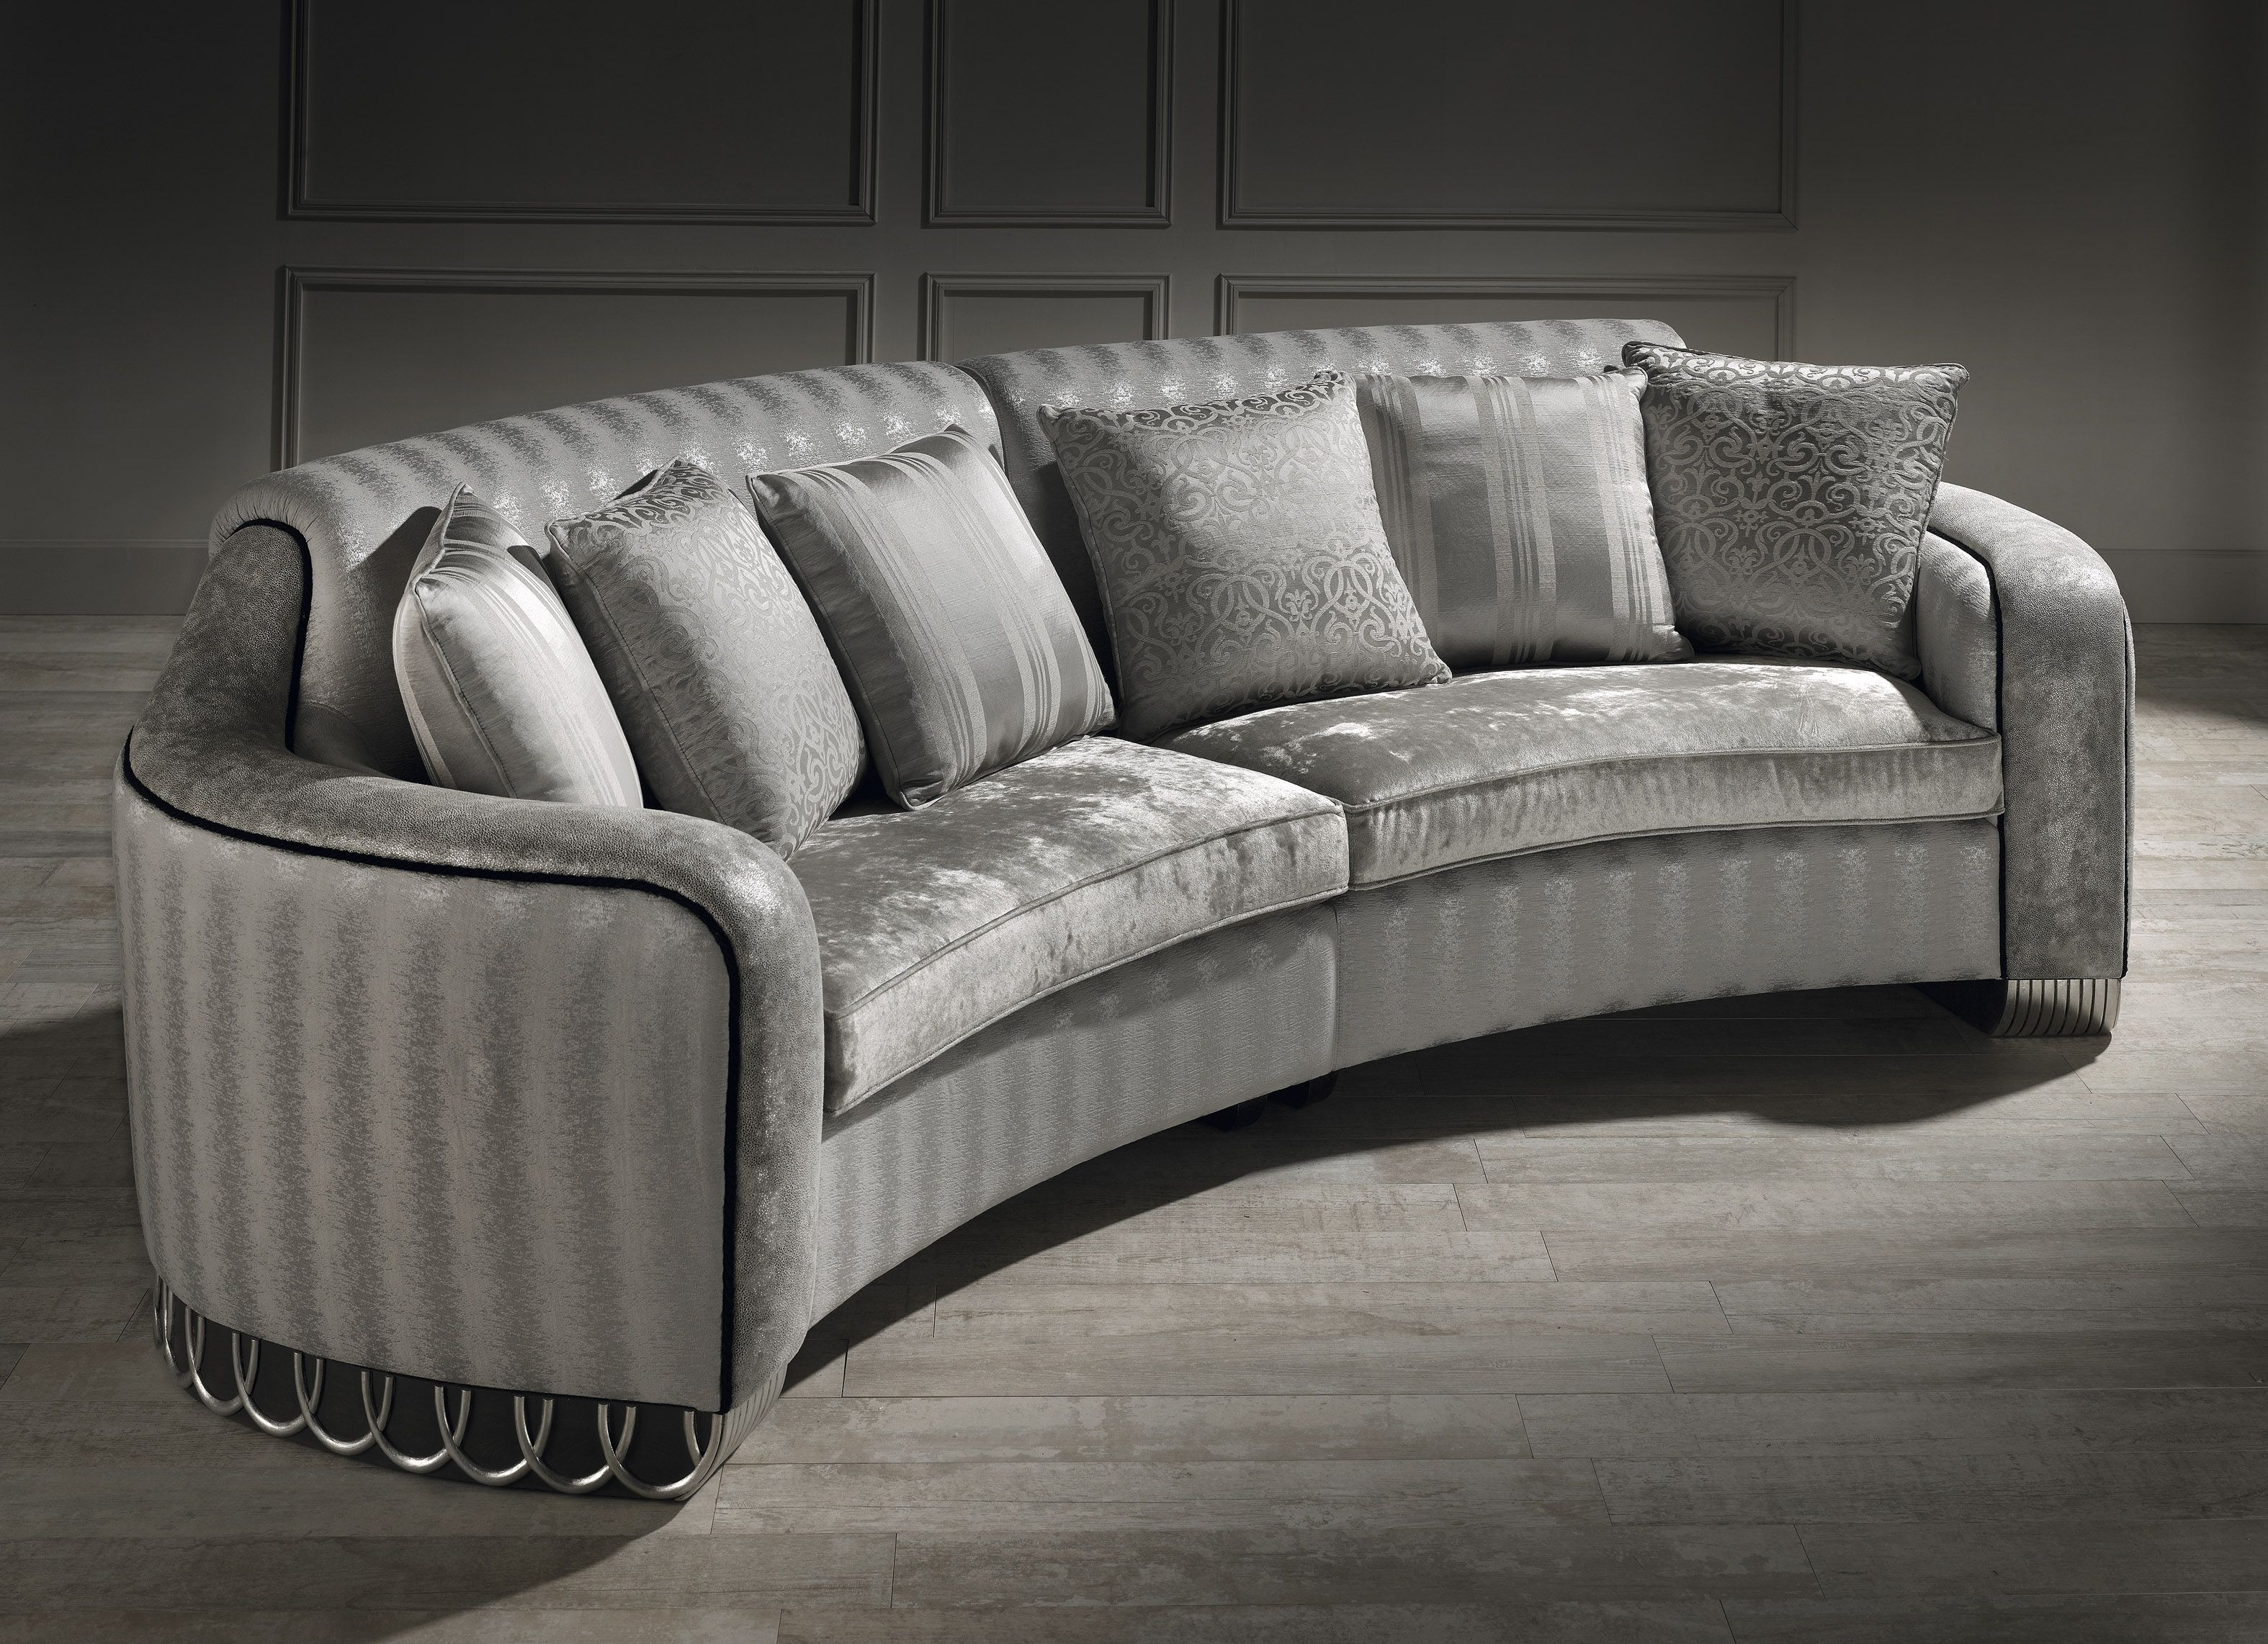 Marvelous Small Curved Sofa, Luxury Small Curved Sofa, Silver Sofa,